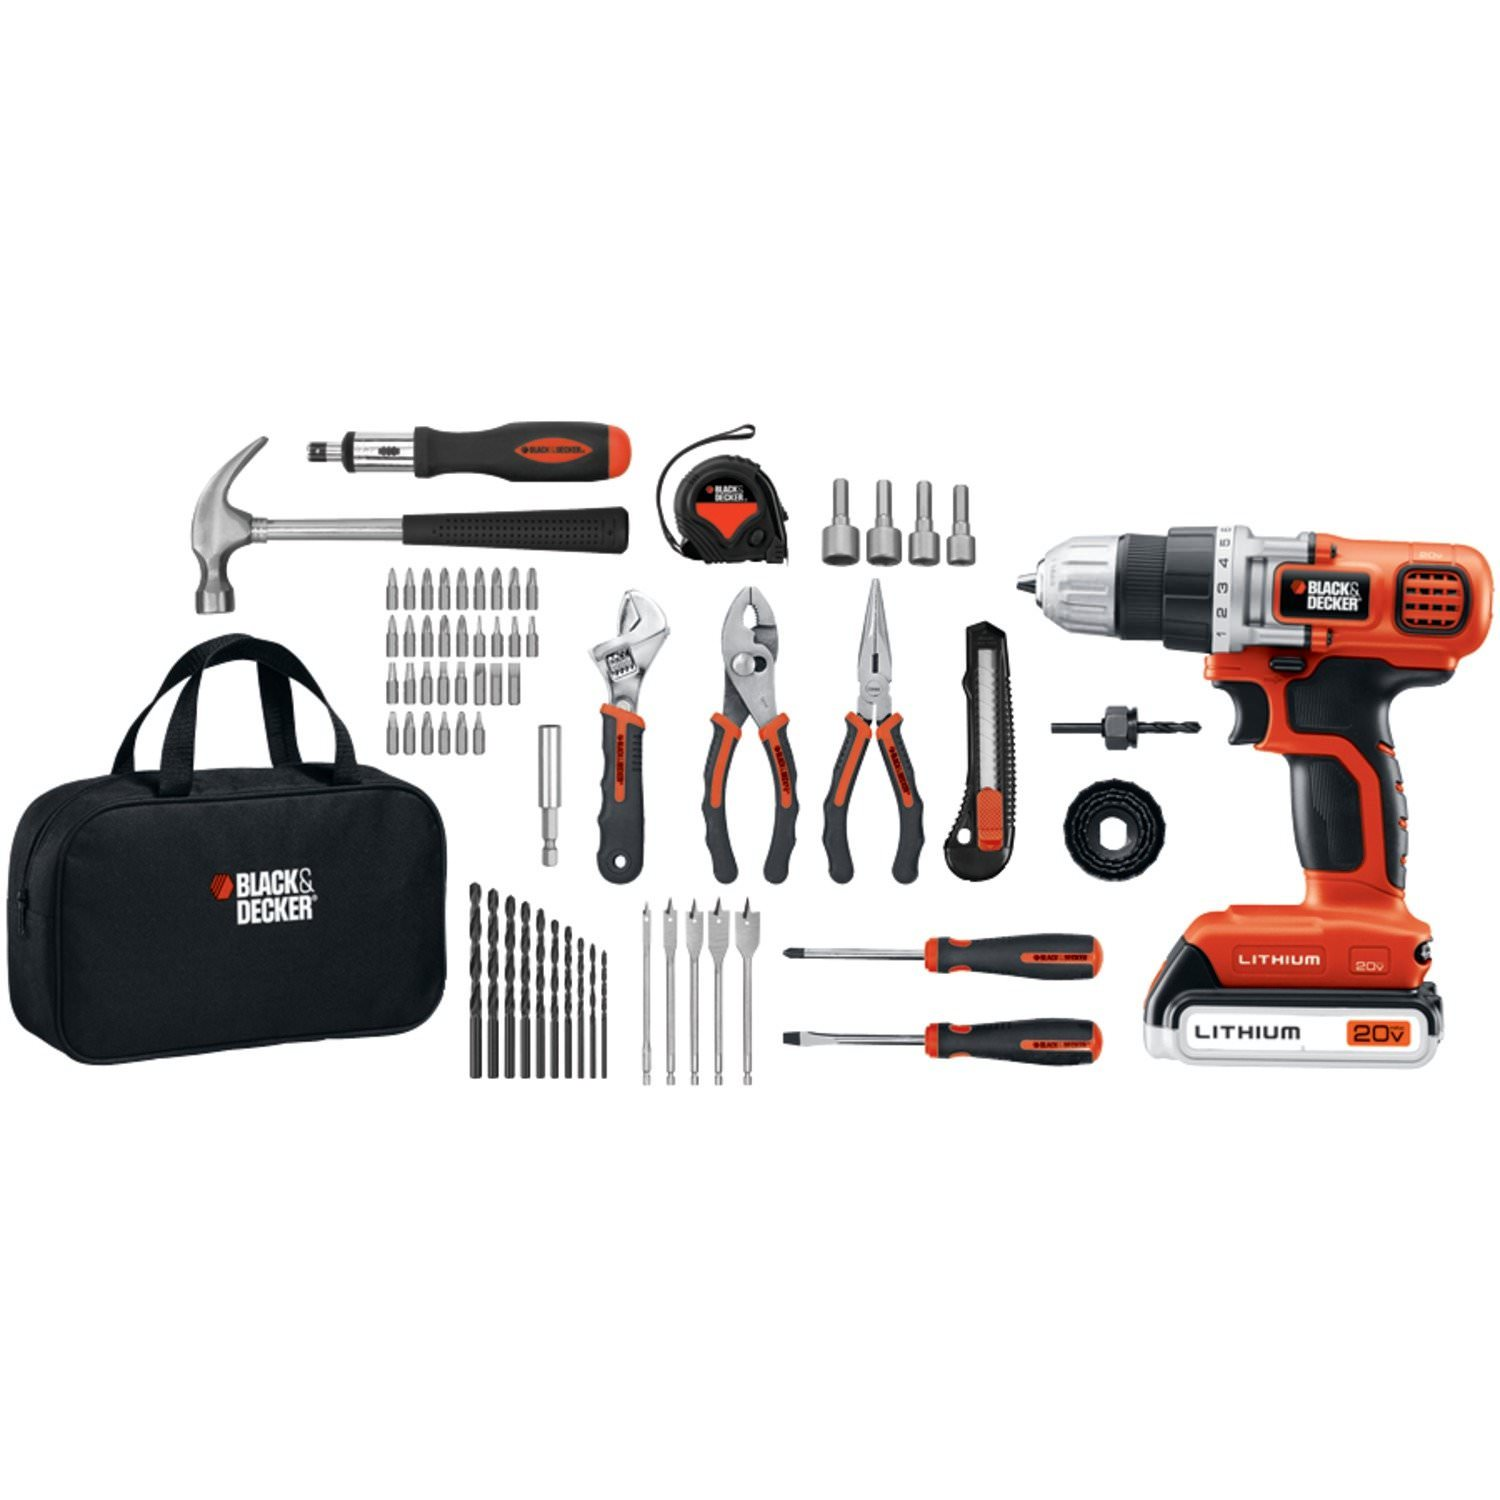 BLACK+DECKER LDX120PK 20V MAX* Lithium Ion Drill-Driver and 66-Piece Project Kit